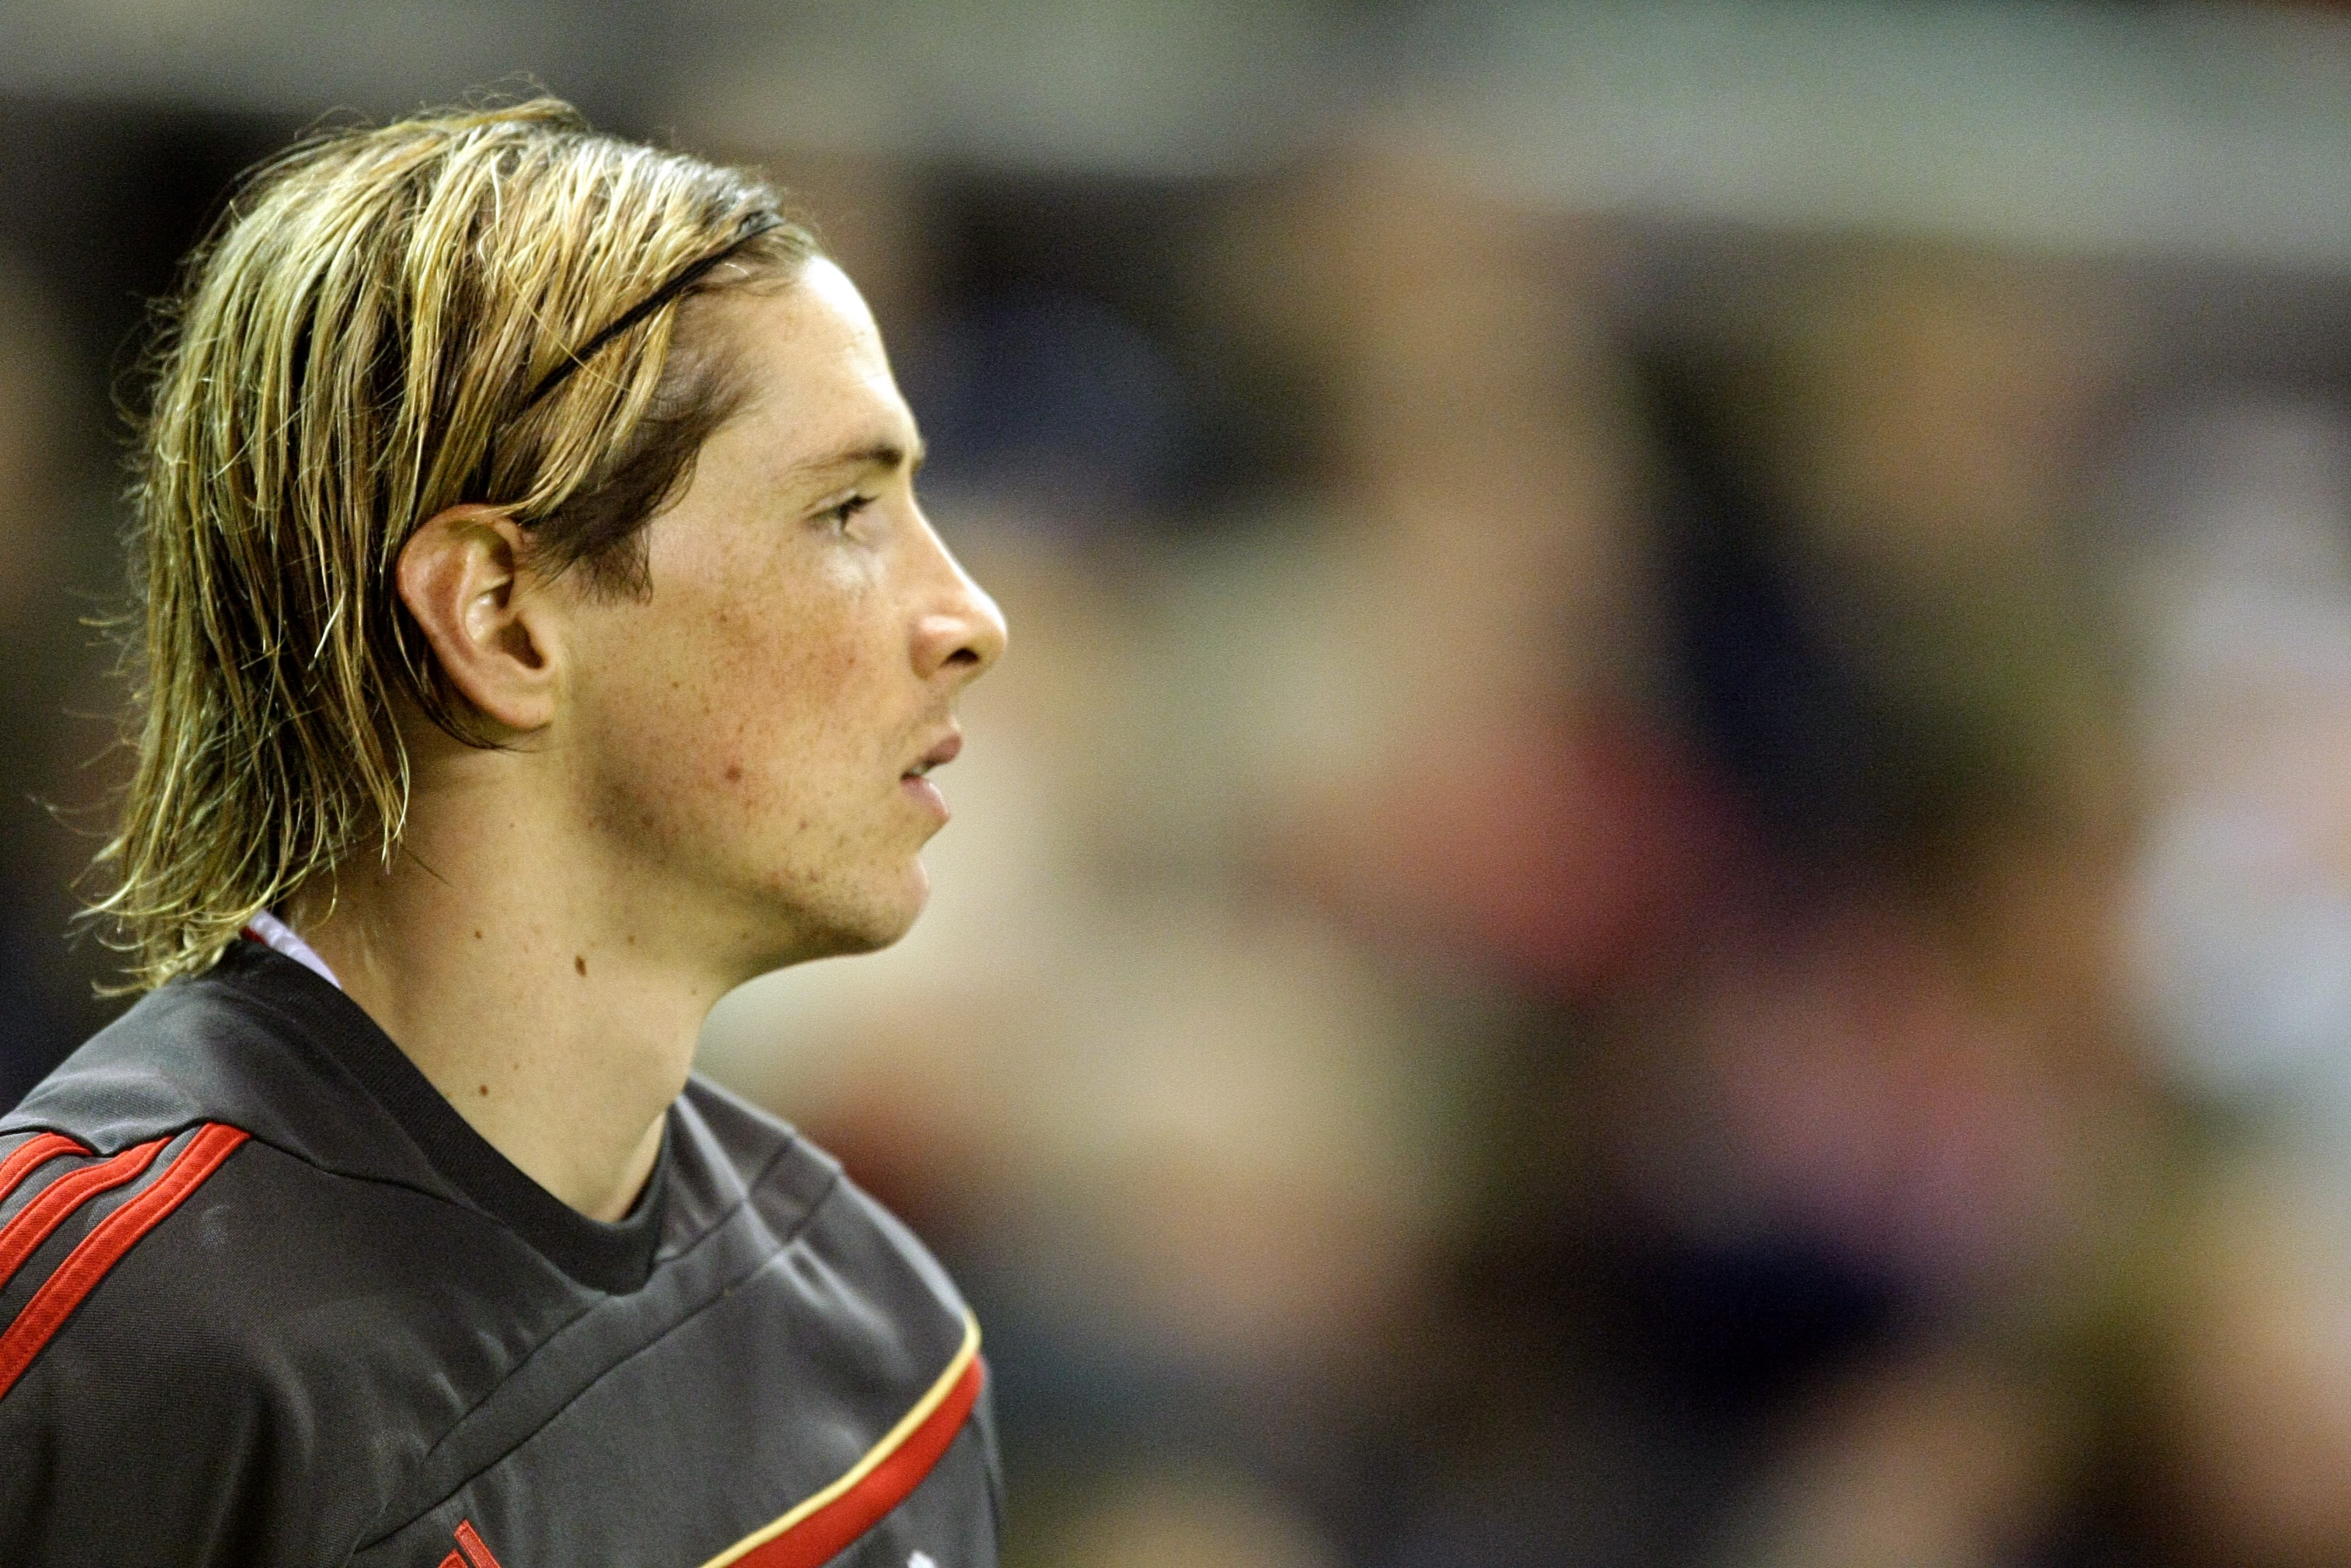 Fernando Torres ends career with final game in Japan